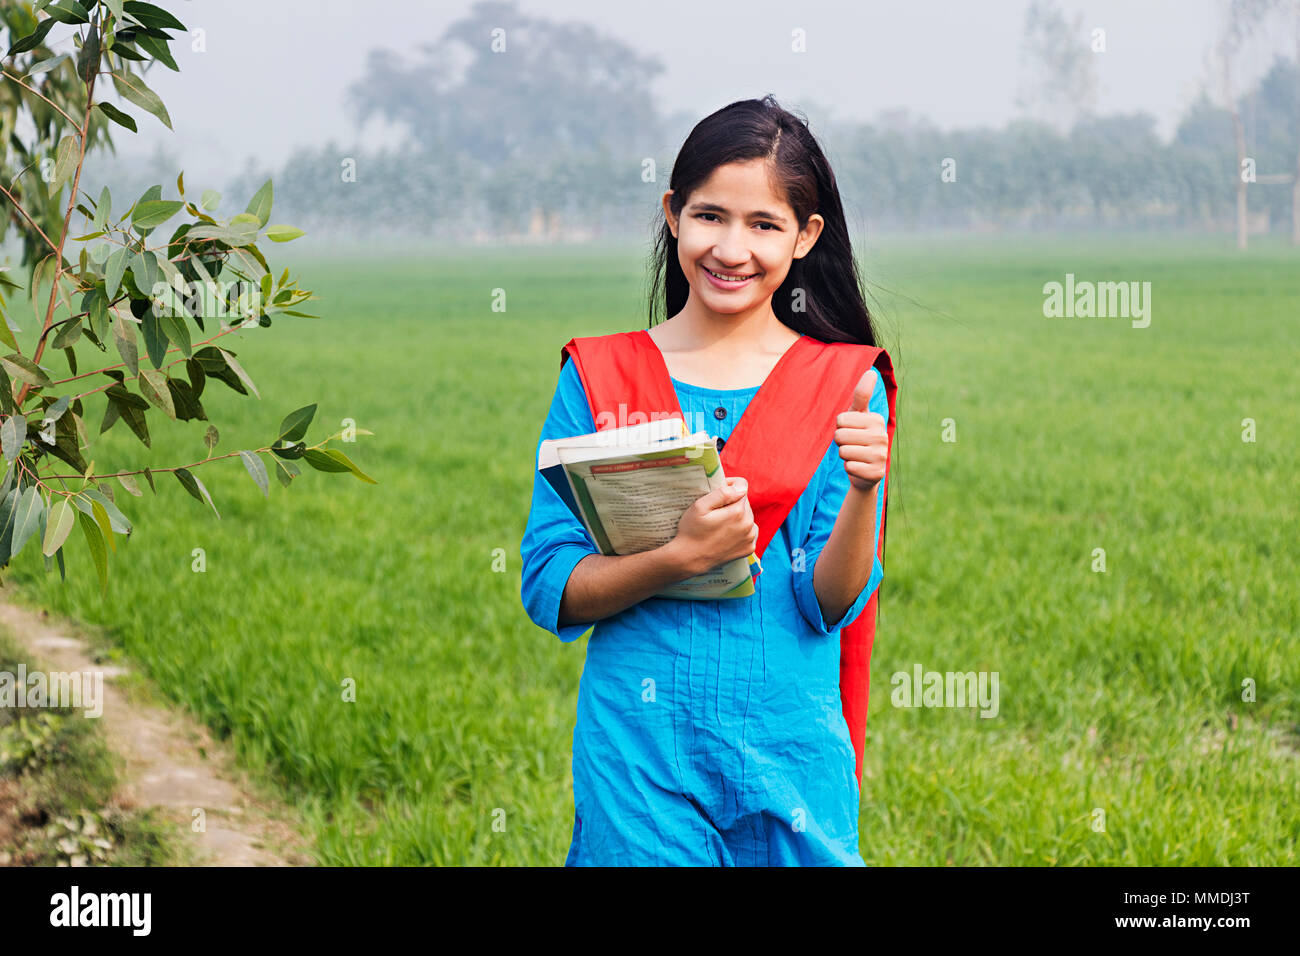 One High School Girl Student Showing Thumbs Up Success Farm Rural Village Stock